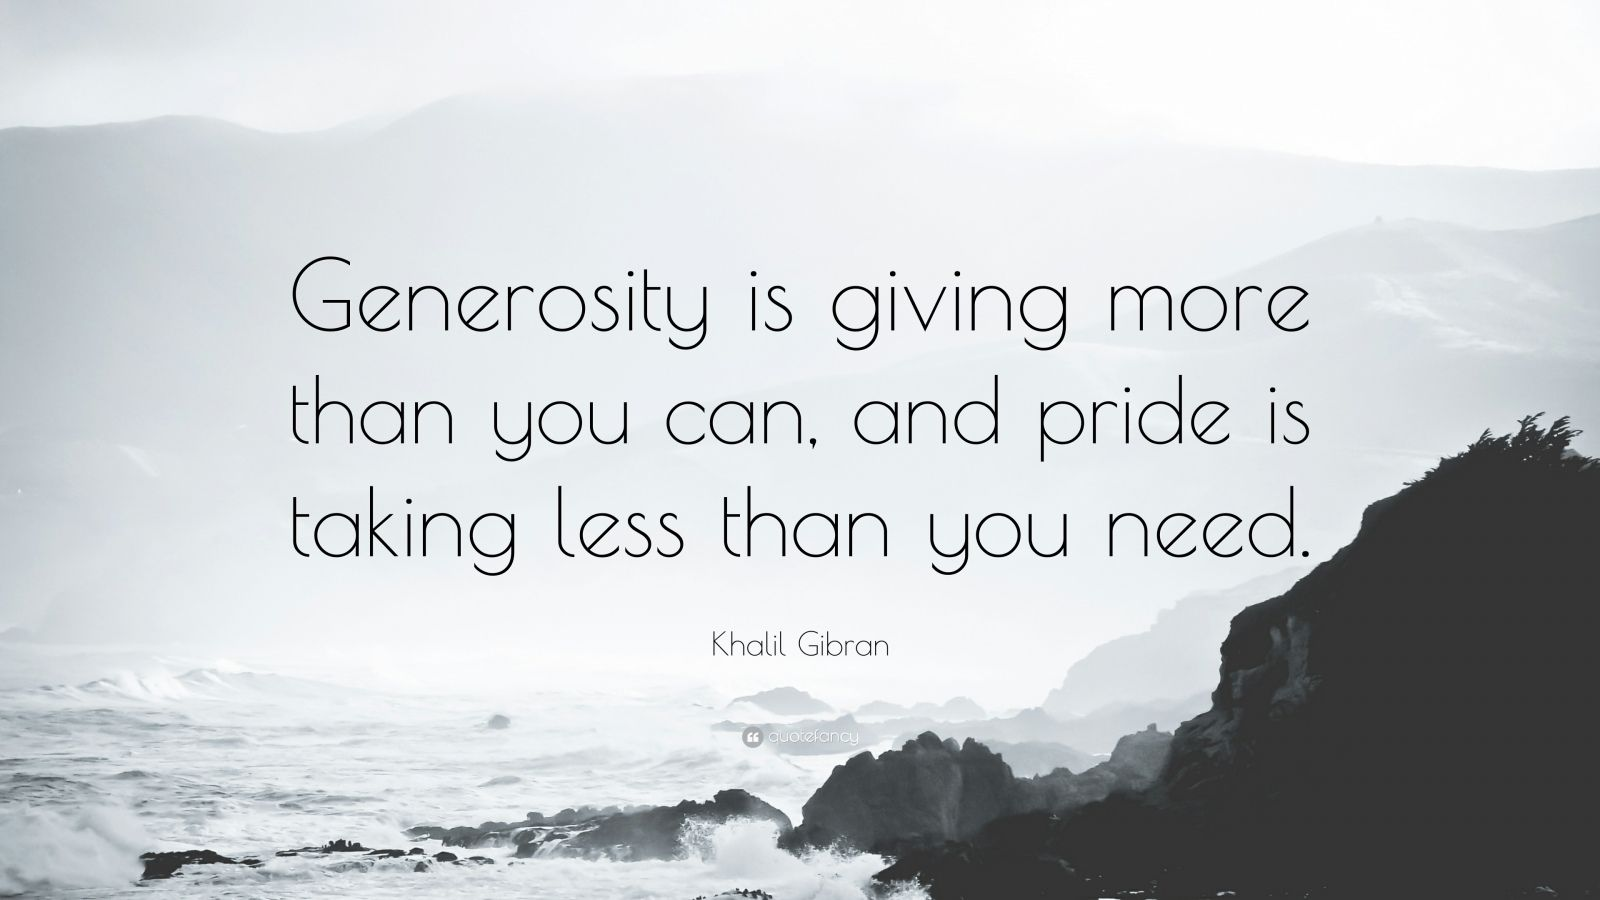 Expectations Quote Wallpapers Khalil Gibran Quote Generosity Is Giving More Than You